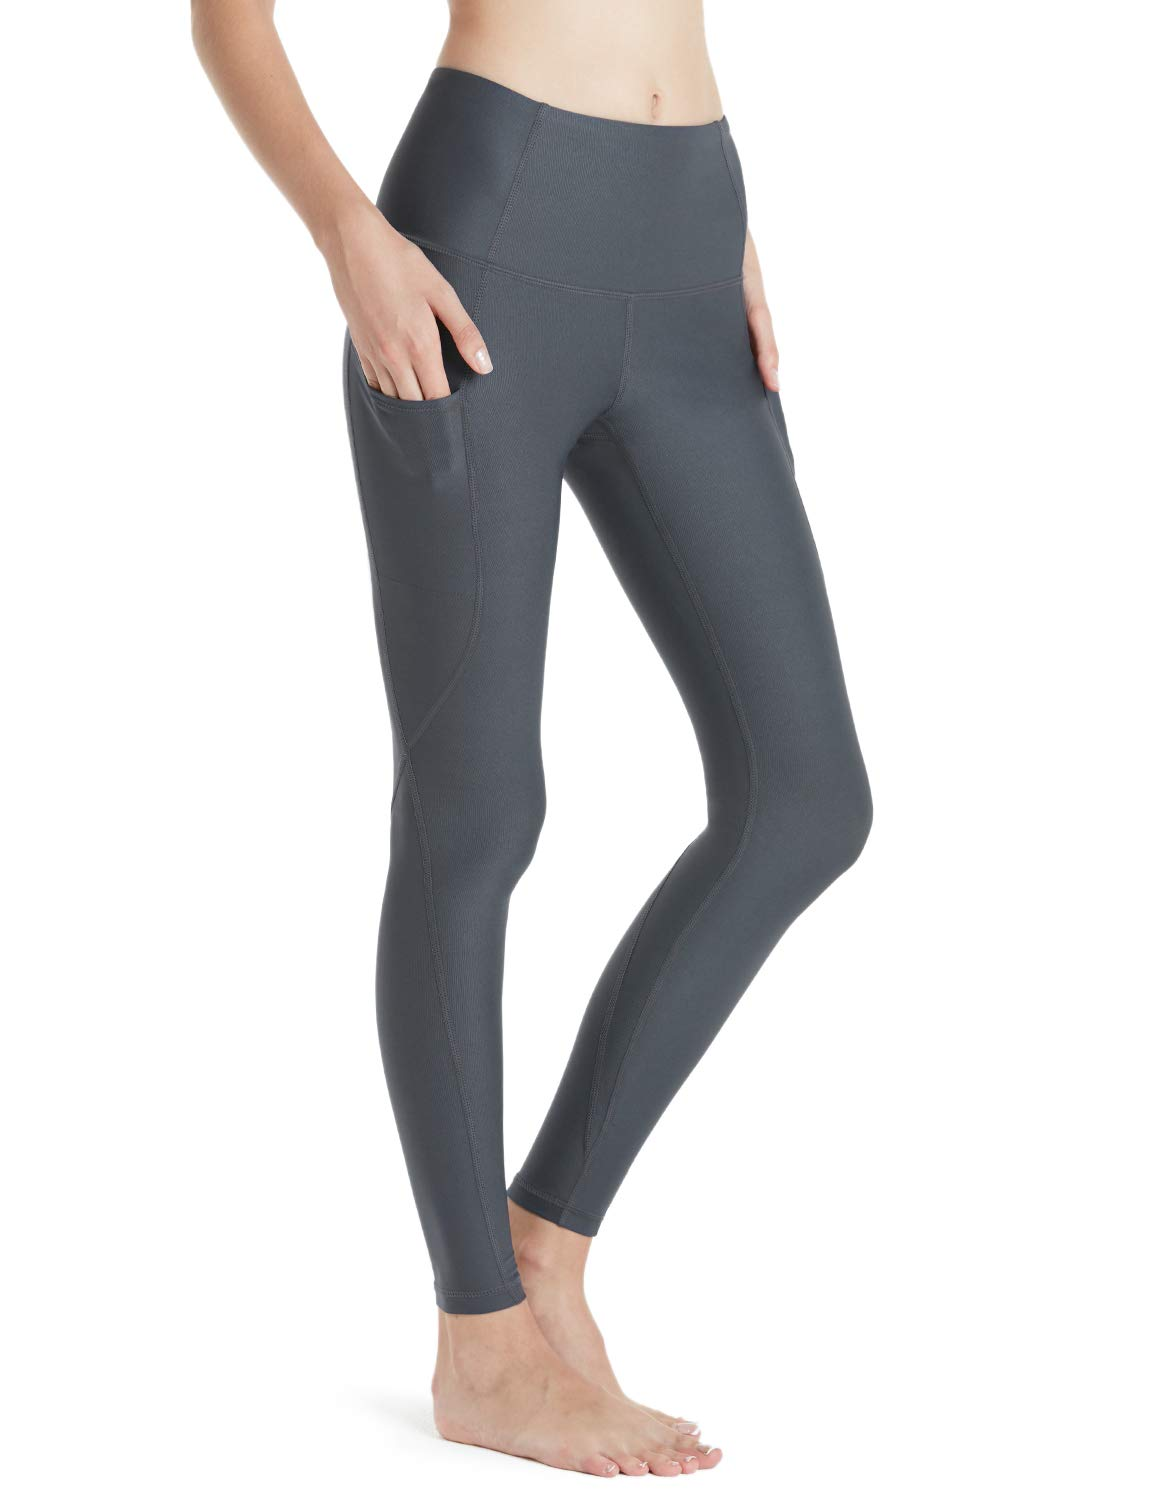 8b1bbc3005 Tesla TM-FYP54-DGY_Medium Yoga Pants High-Waist Leggings w Side Pockets  FYP54: Amazon.in: Sports, Fitness & Outdoors